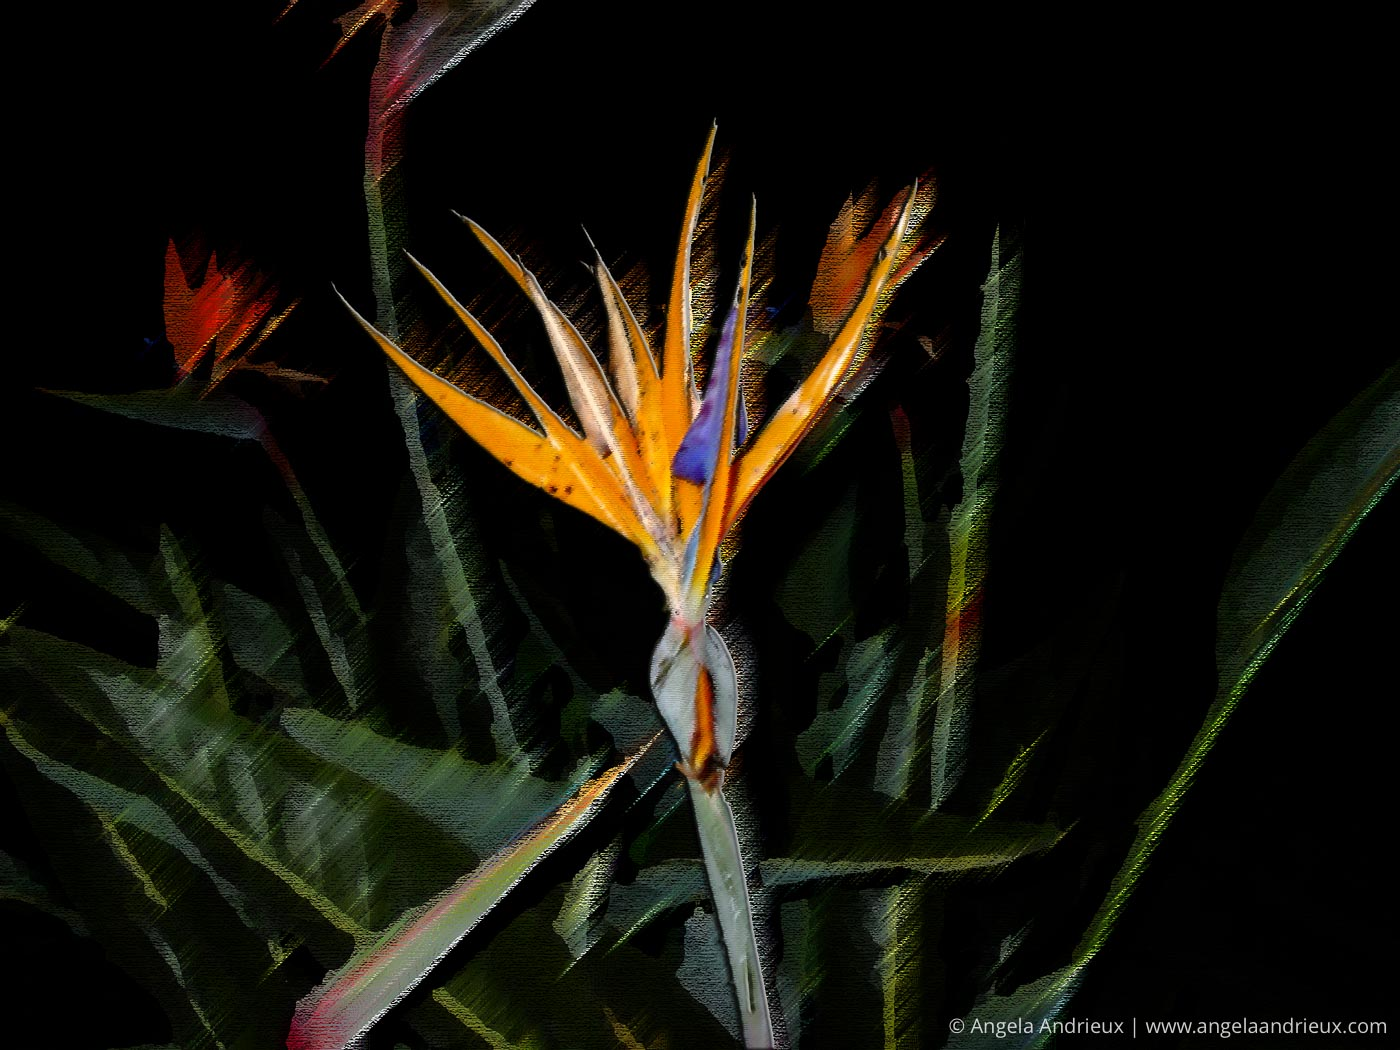 Bird of Paradise | Another of my early attempts at Digital Photo Art